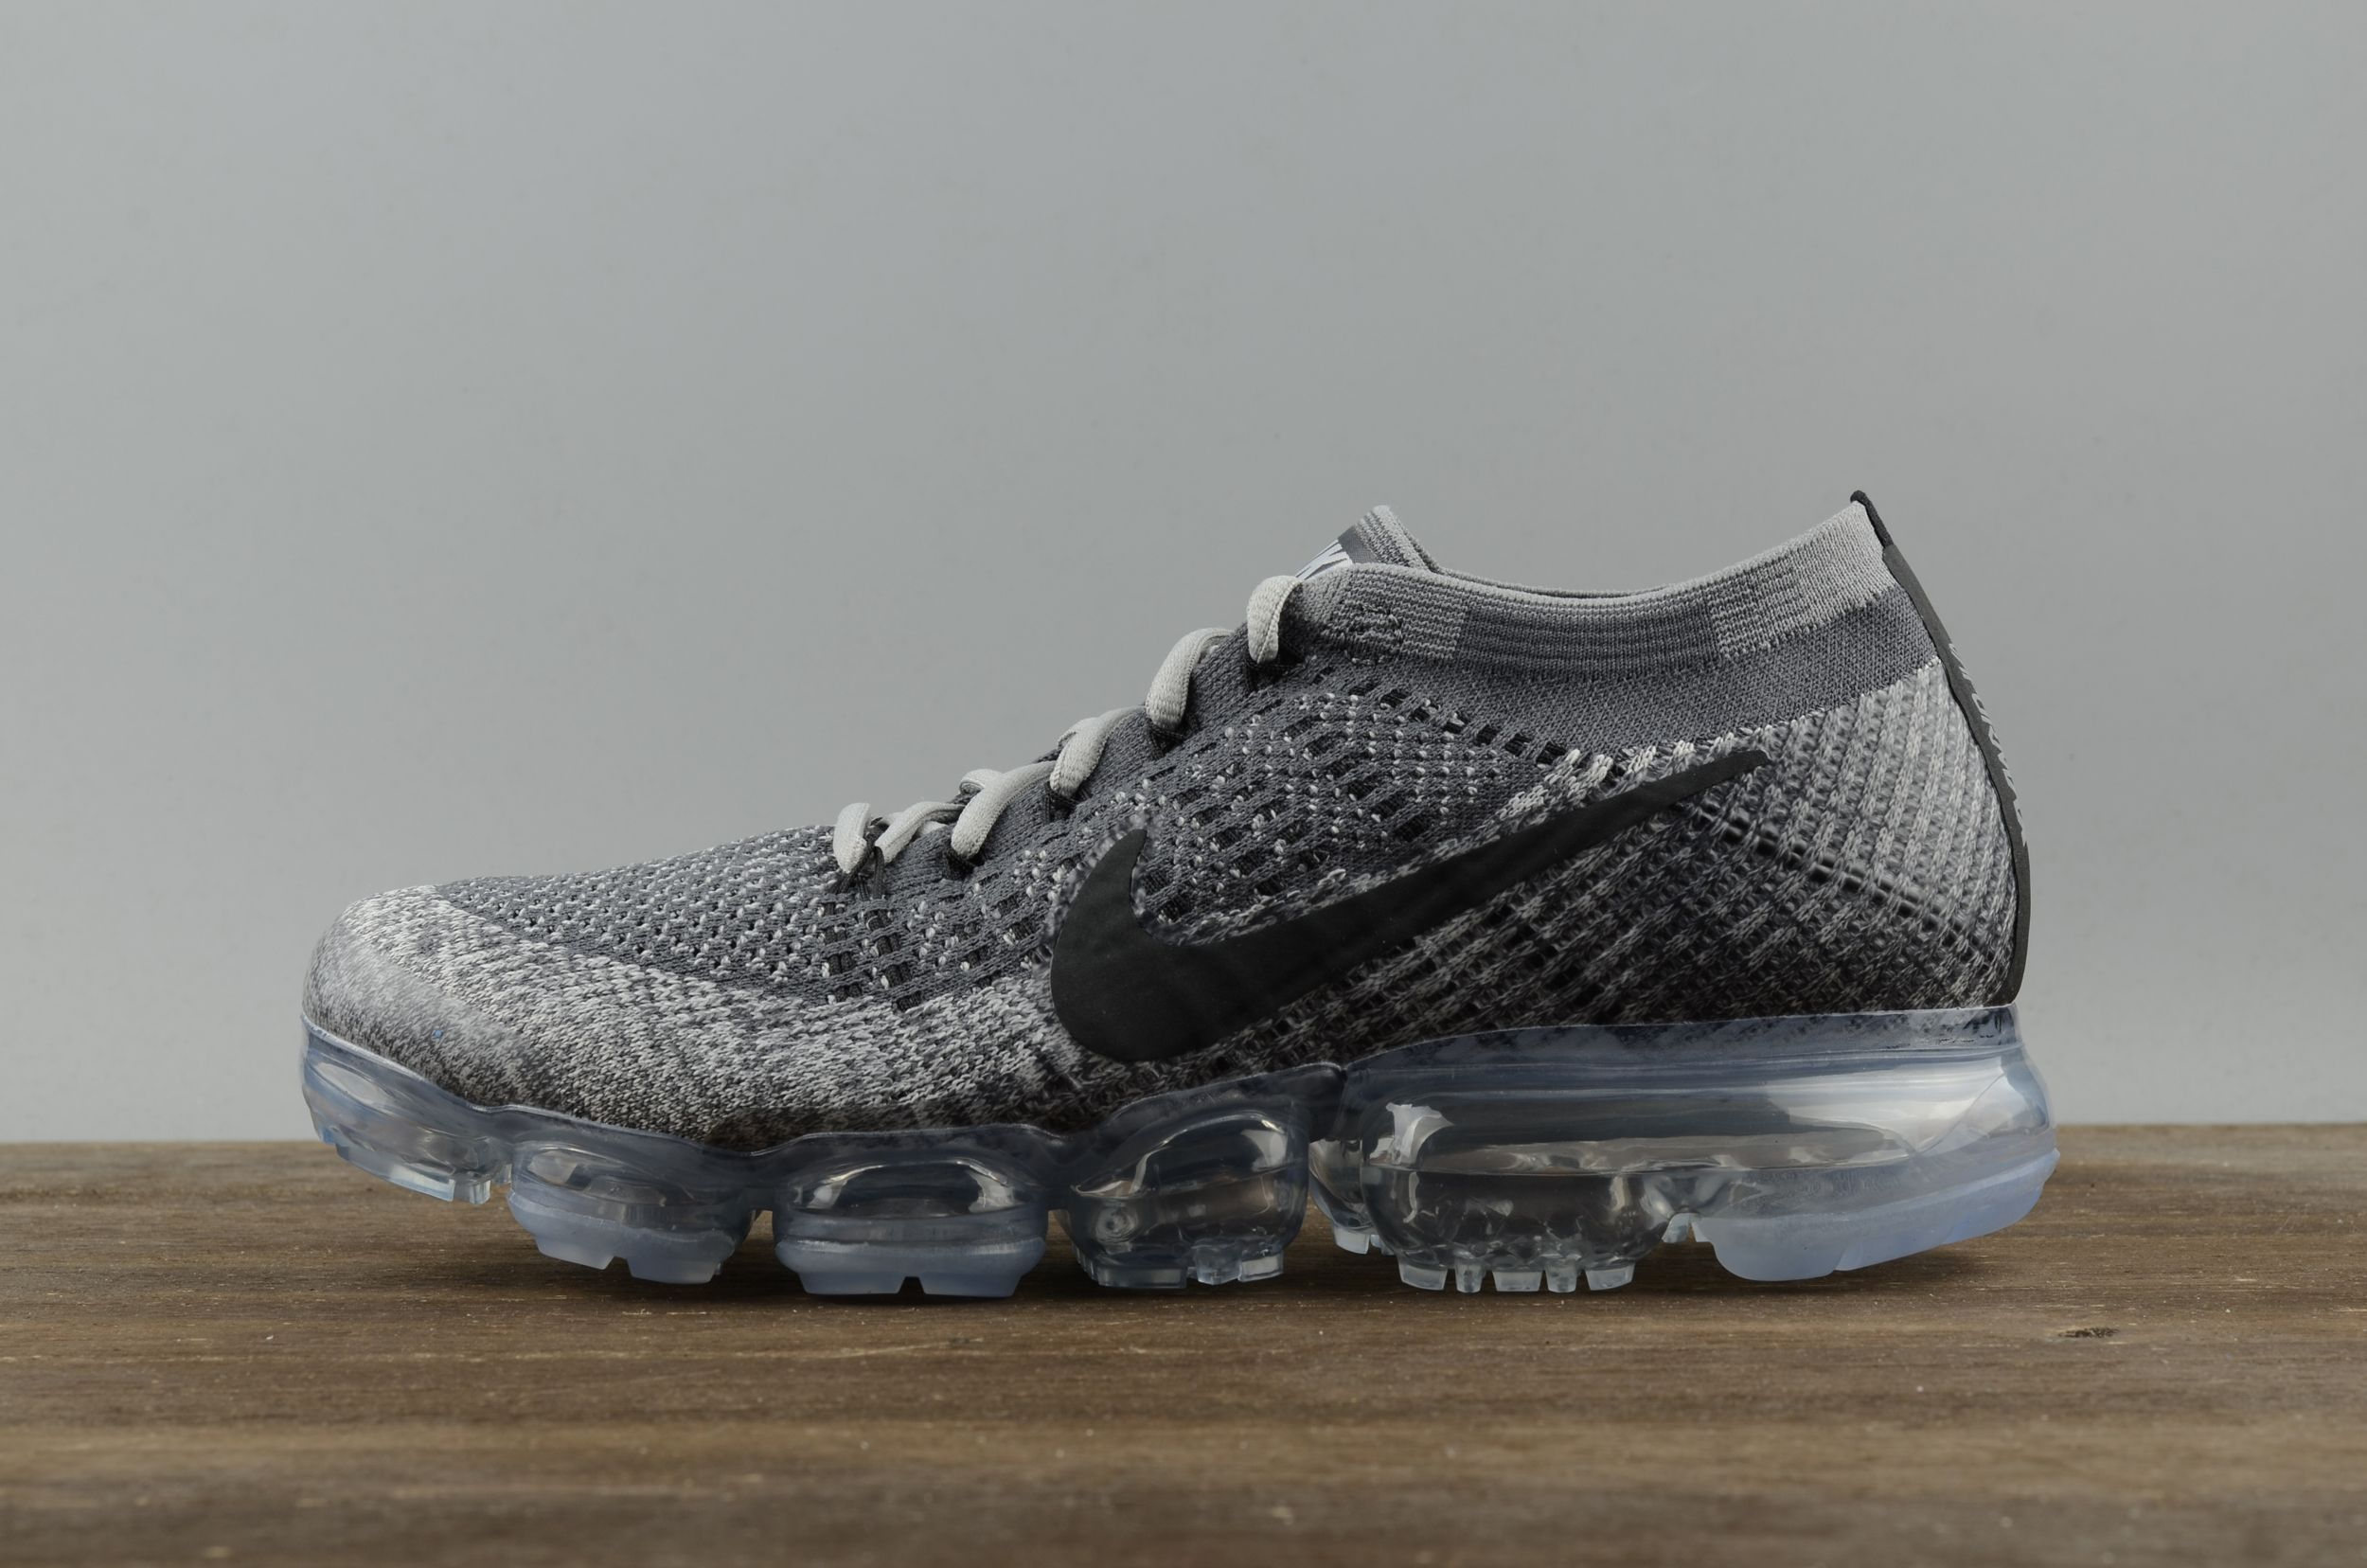 bd1b24adb70be 2017 NIKE AIR VAPORMAX FLYKNIT 849558-002 are available contact us   shoppingheavenonline yahoo